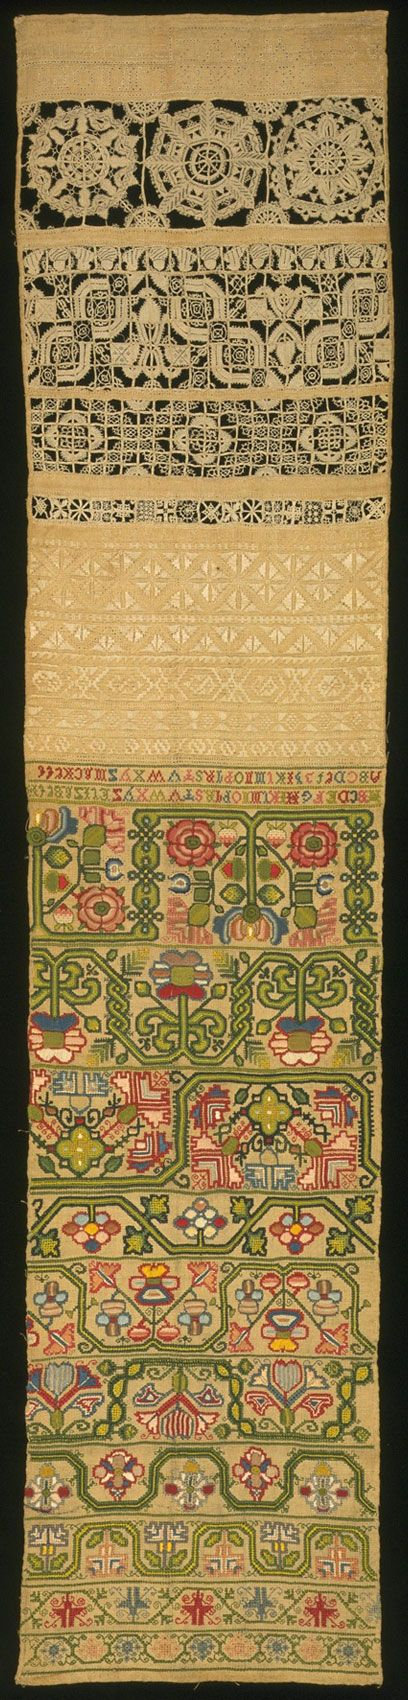 Linen sampler embroidered with silk and linen, by Elizabeth Mackett, England, 1696. Museum no. 433-1884 Victoria and Albert Museum